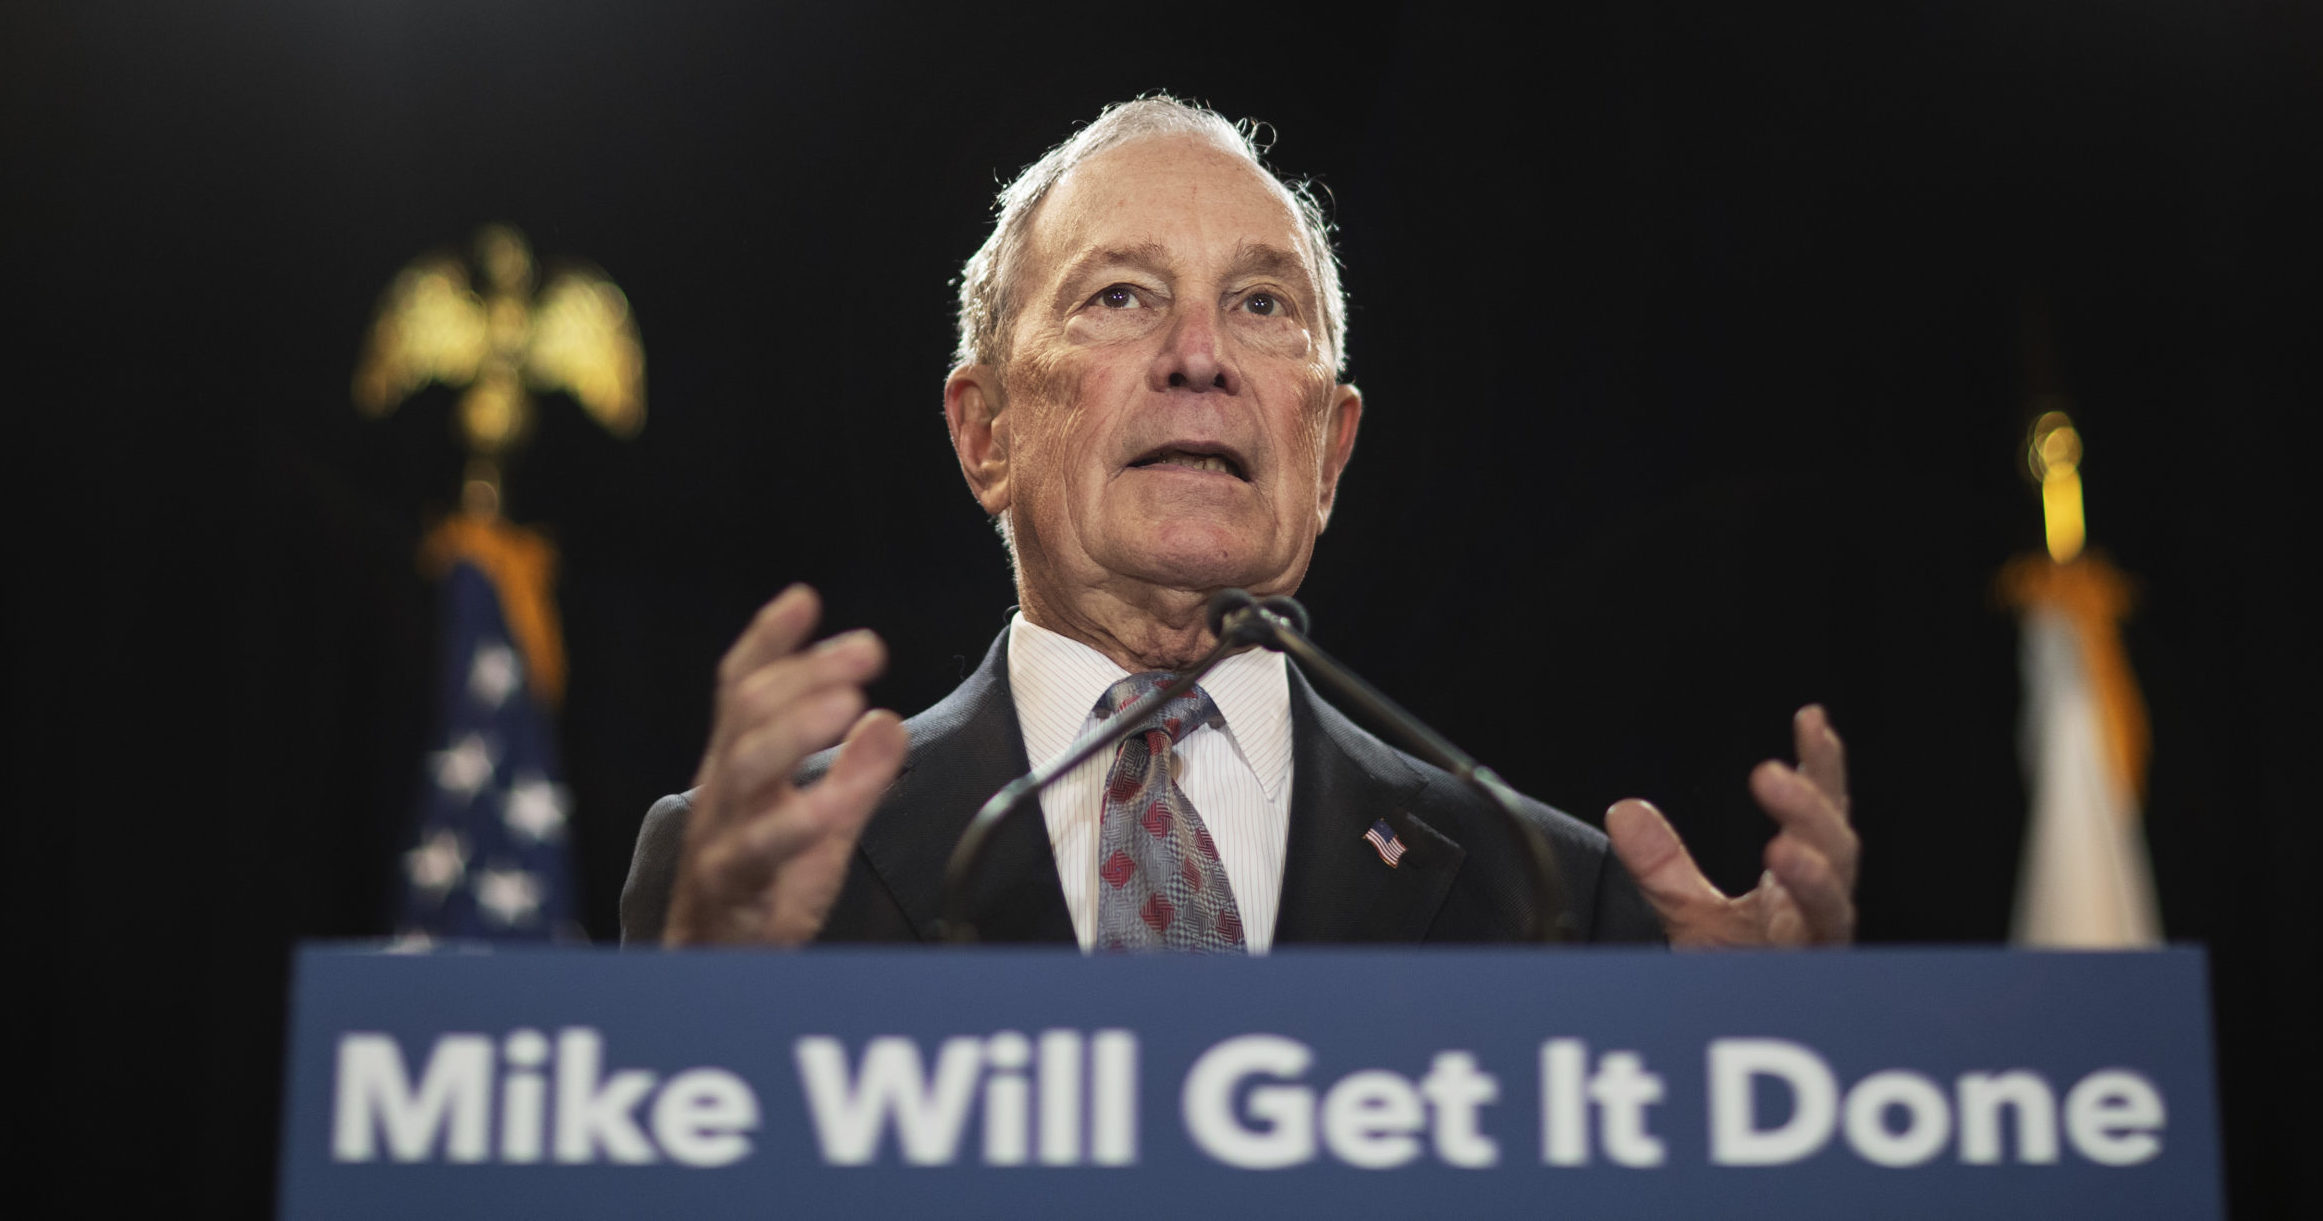 Then-Democratic presidential candidate and former New York City Mayor Michael Bloomberg speaks at a campaign event in Providence, Rhode Island, on Feb. 5, 2020.